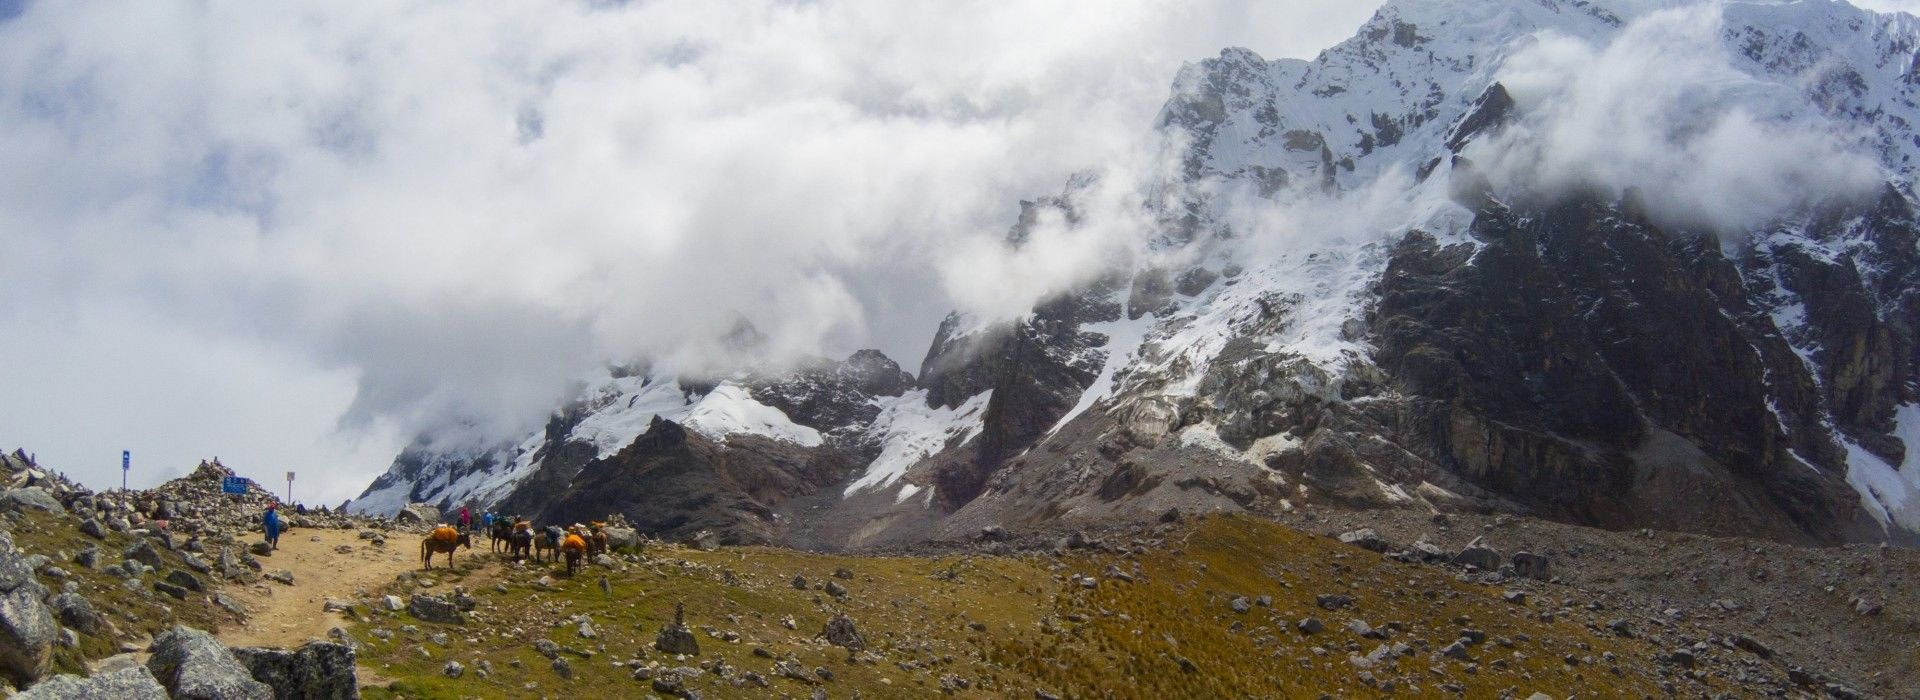 Special interests and hobbies Tours in South America